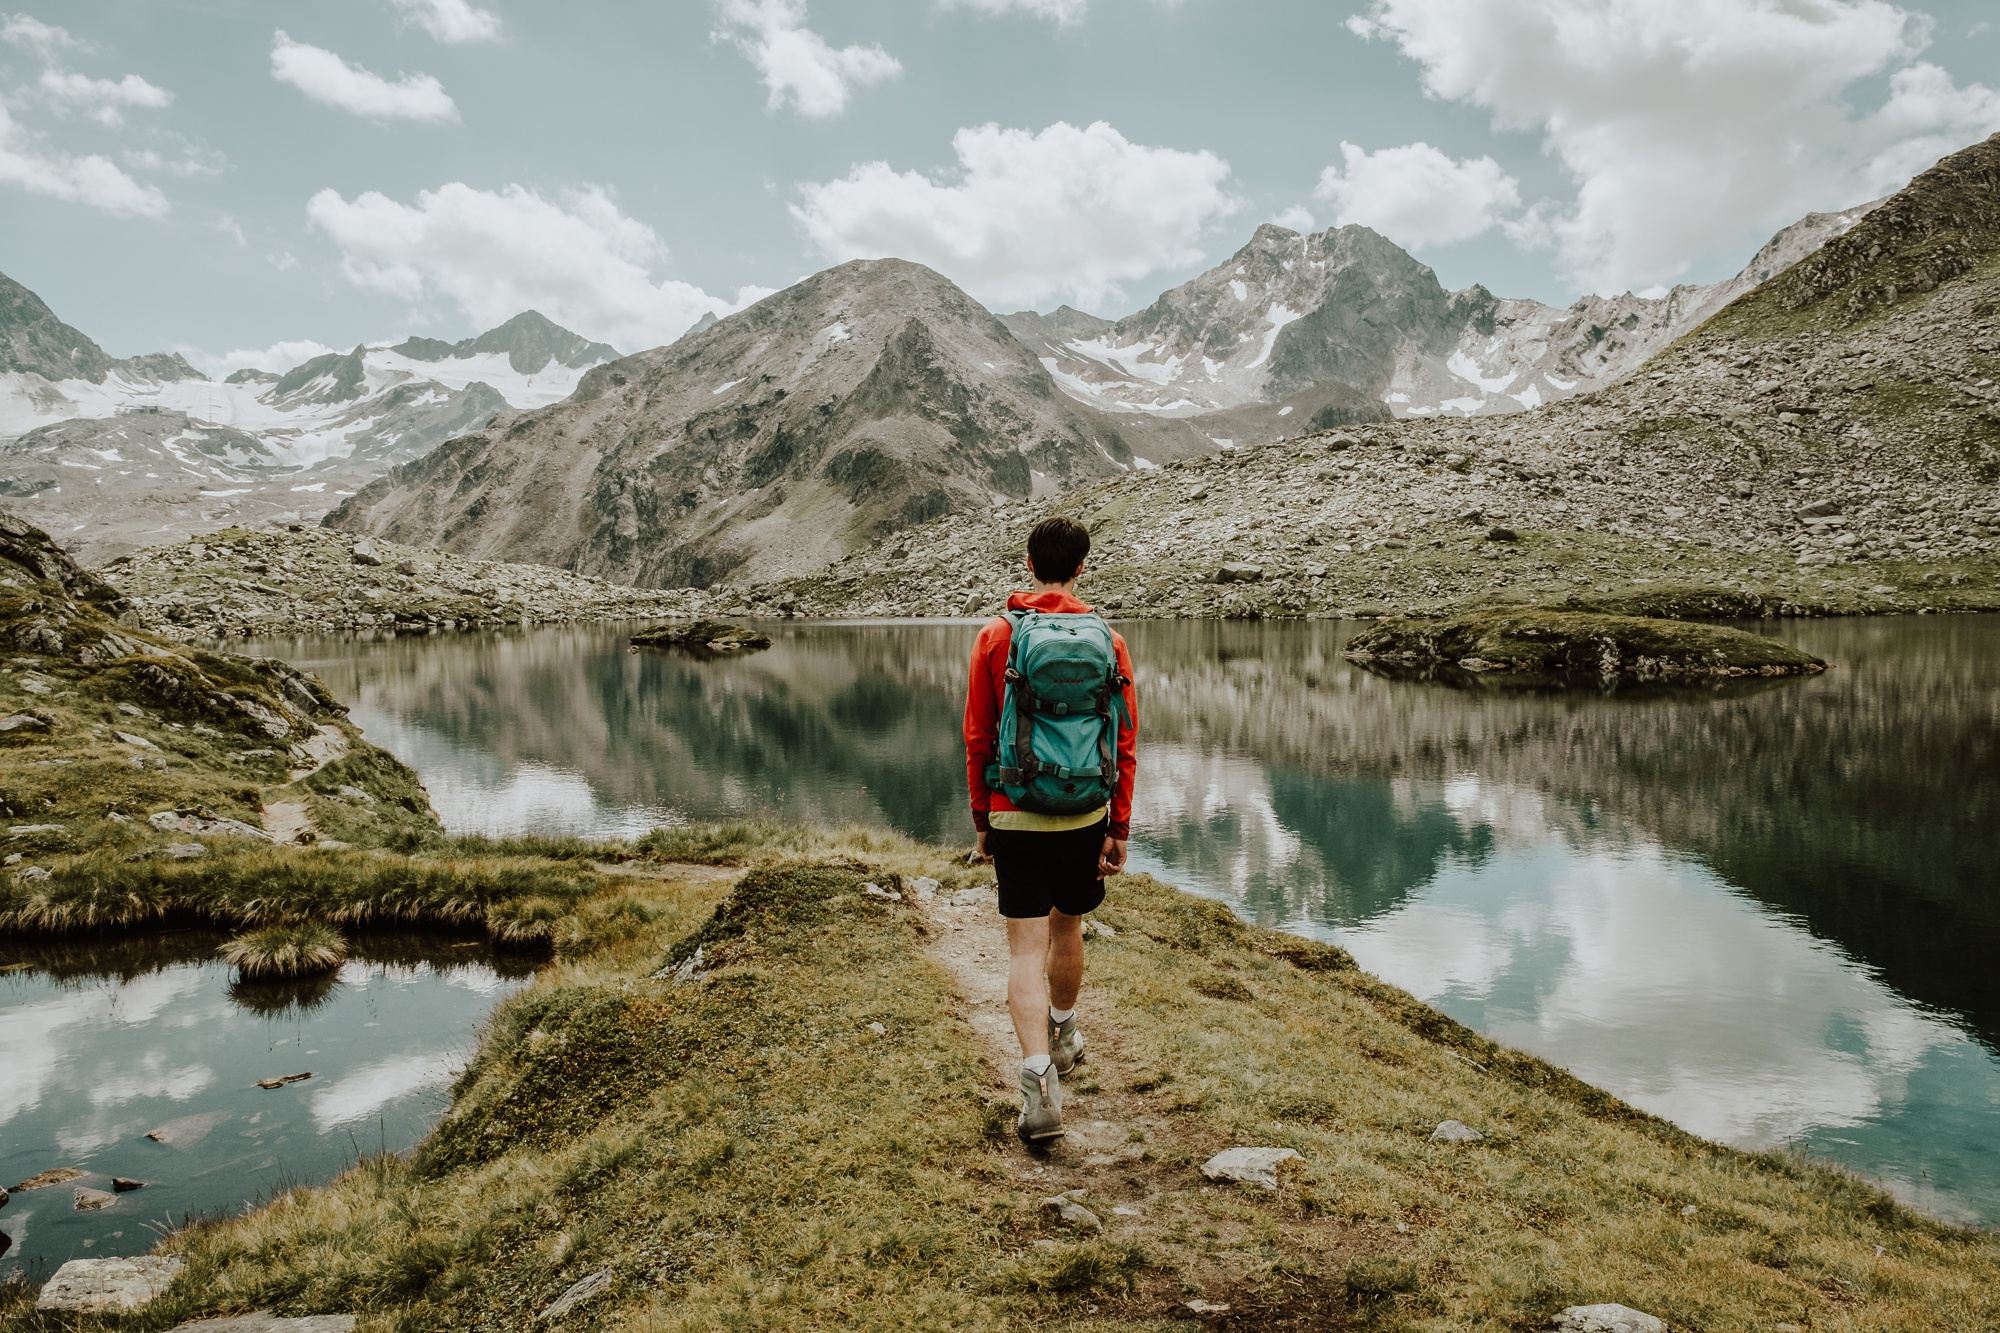 Hiking the Stubai High Trail, a hiker walks between two mountain lakes in the Austrian Alps, on one of Europe's best multi-day hiking routes. Image by Wild Connections Photography